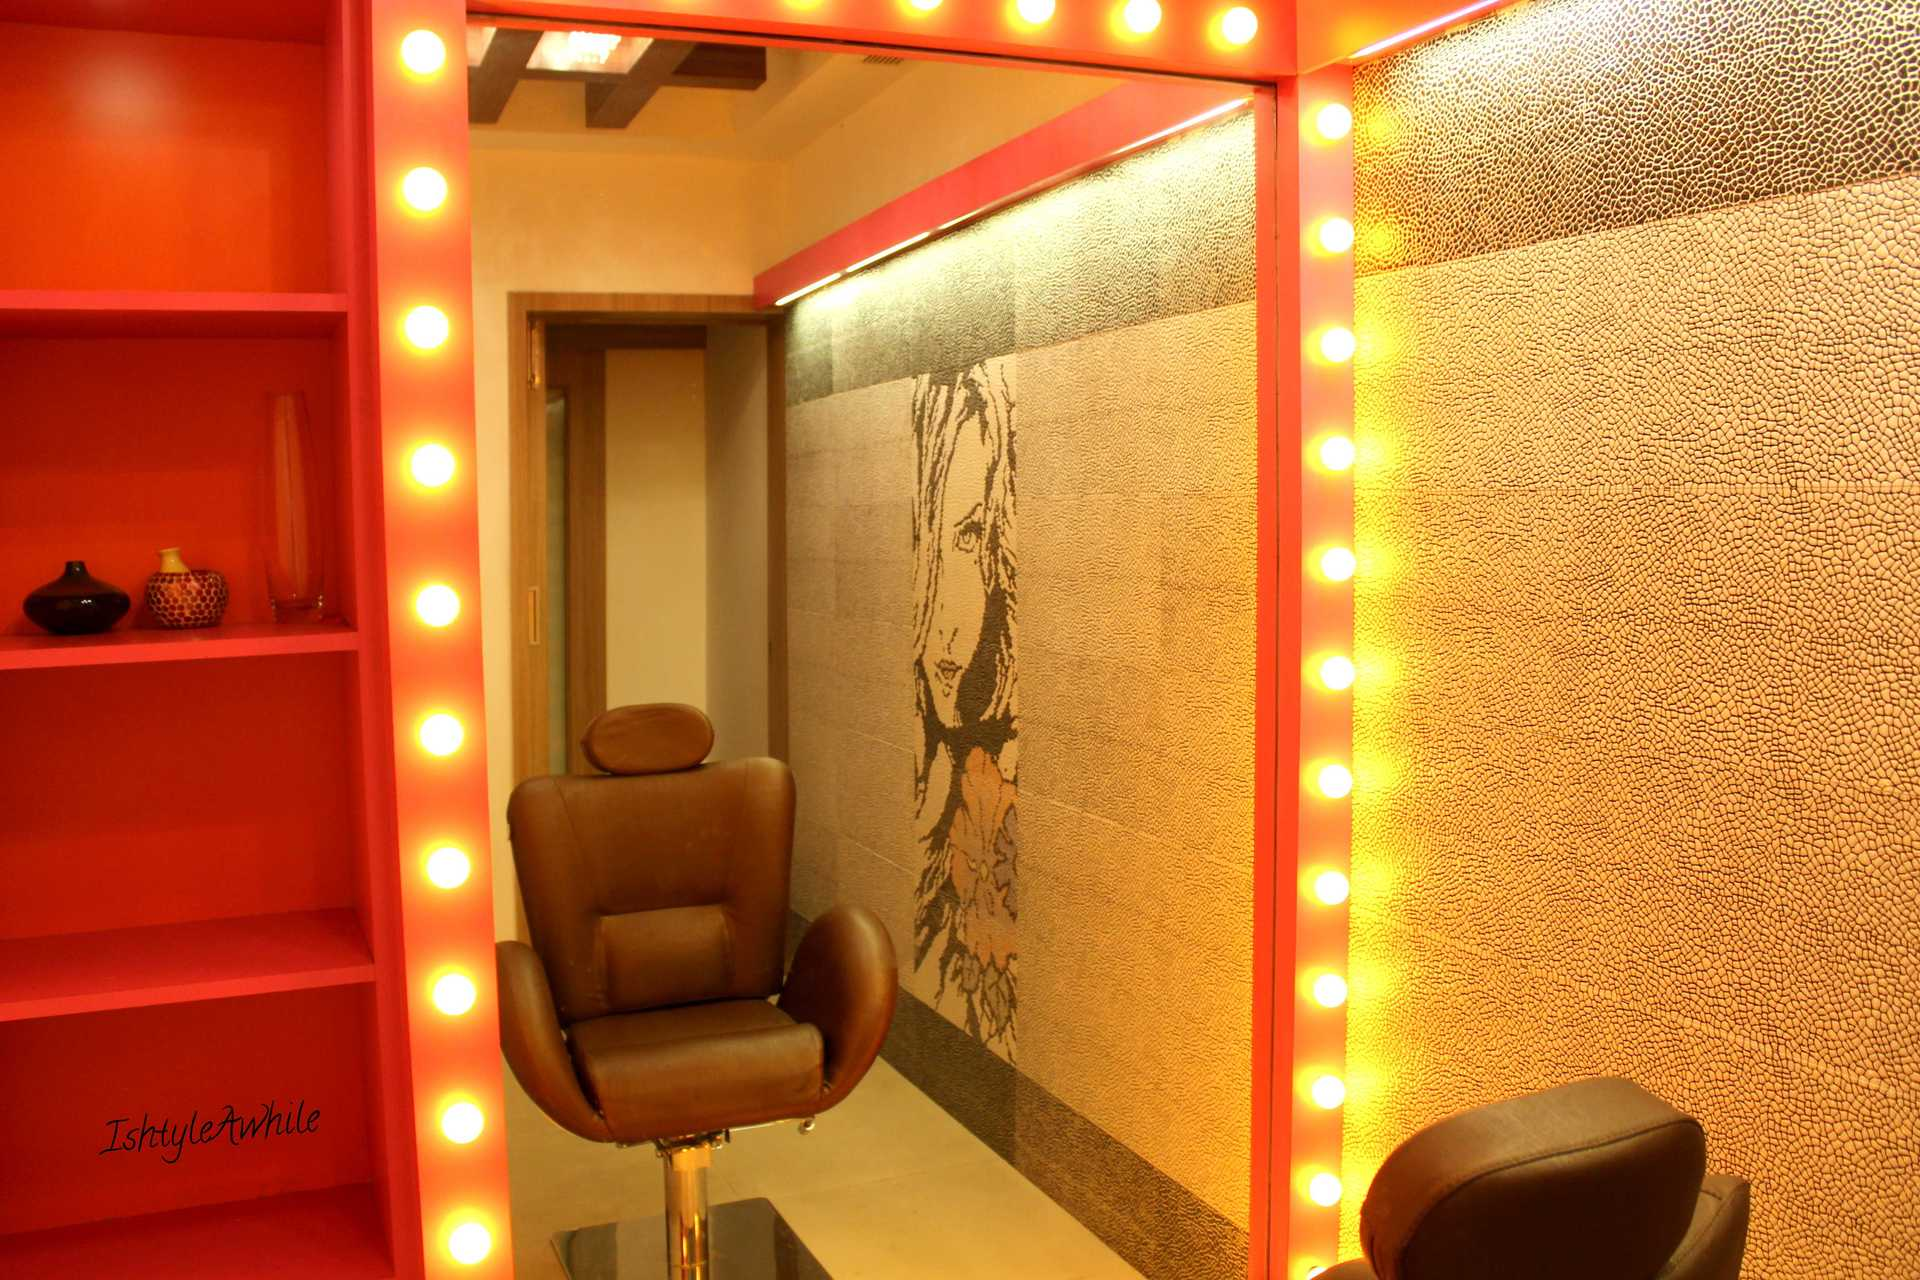 IshtyleAwhile - Eleganz_Salon chennai review